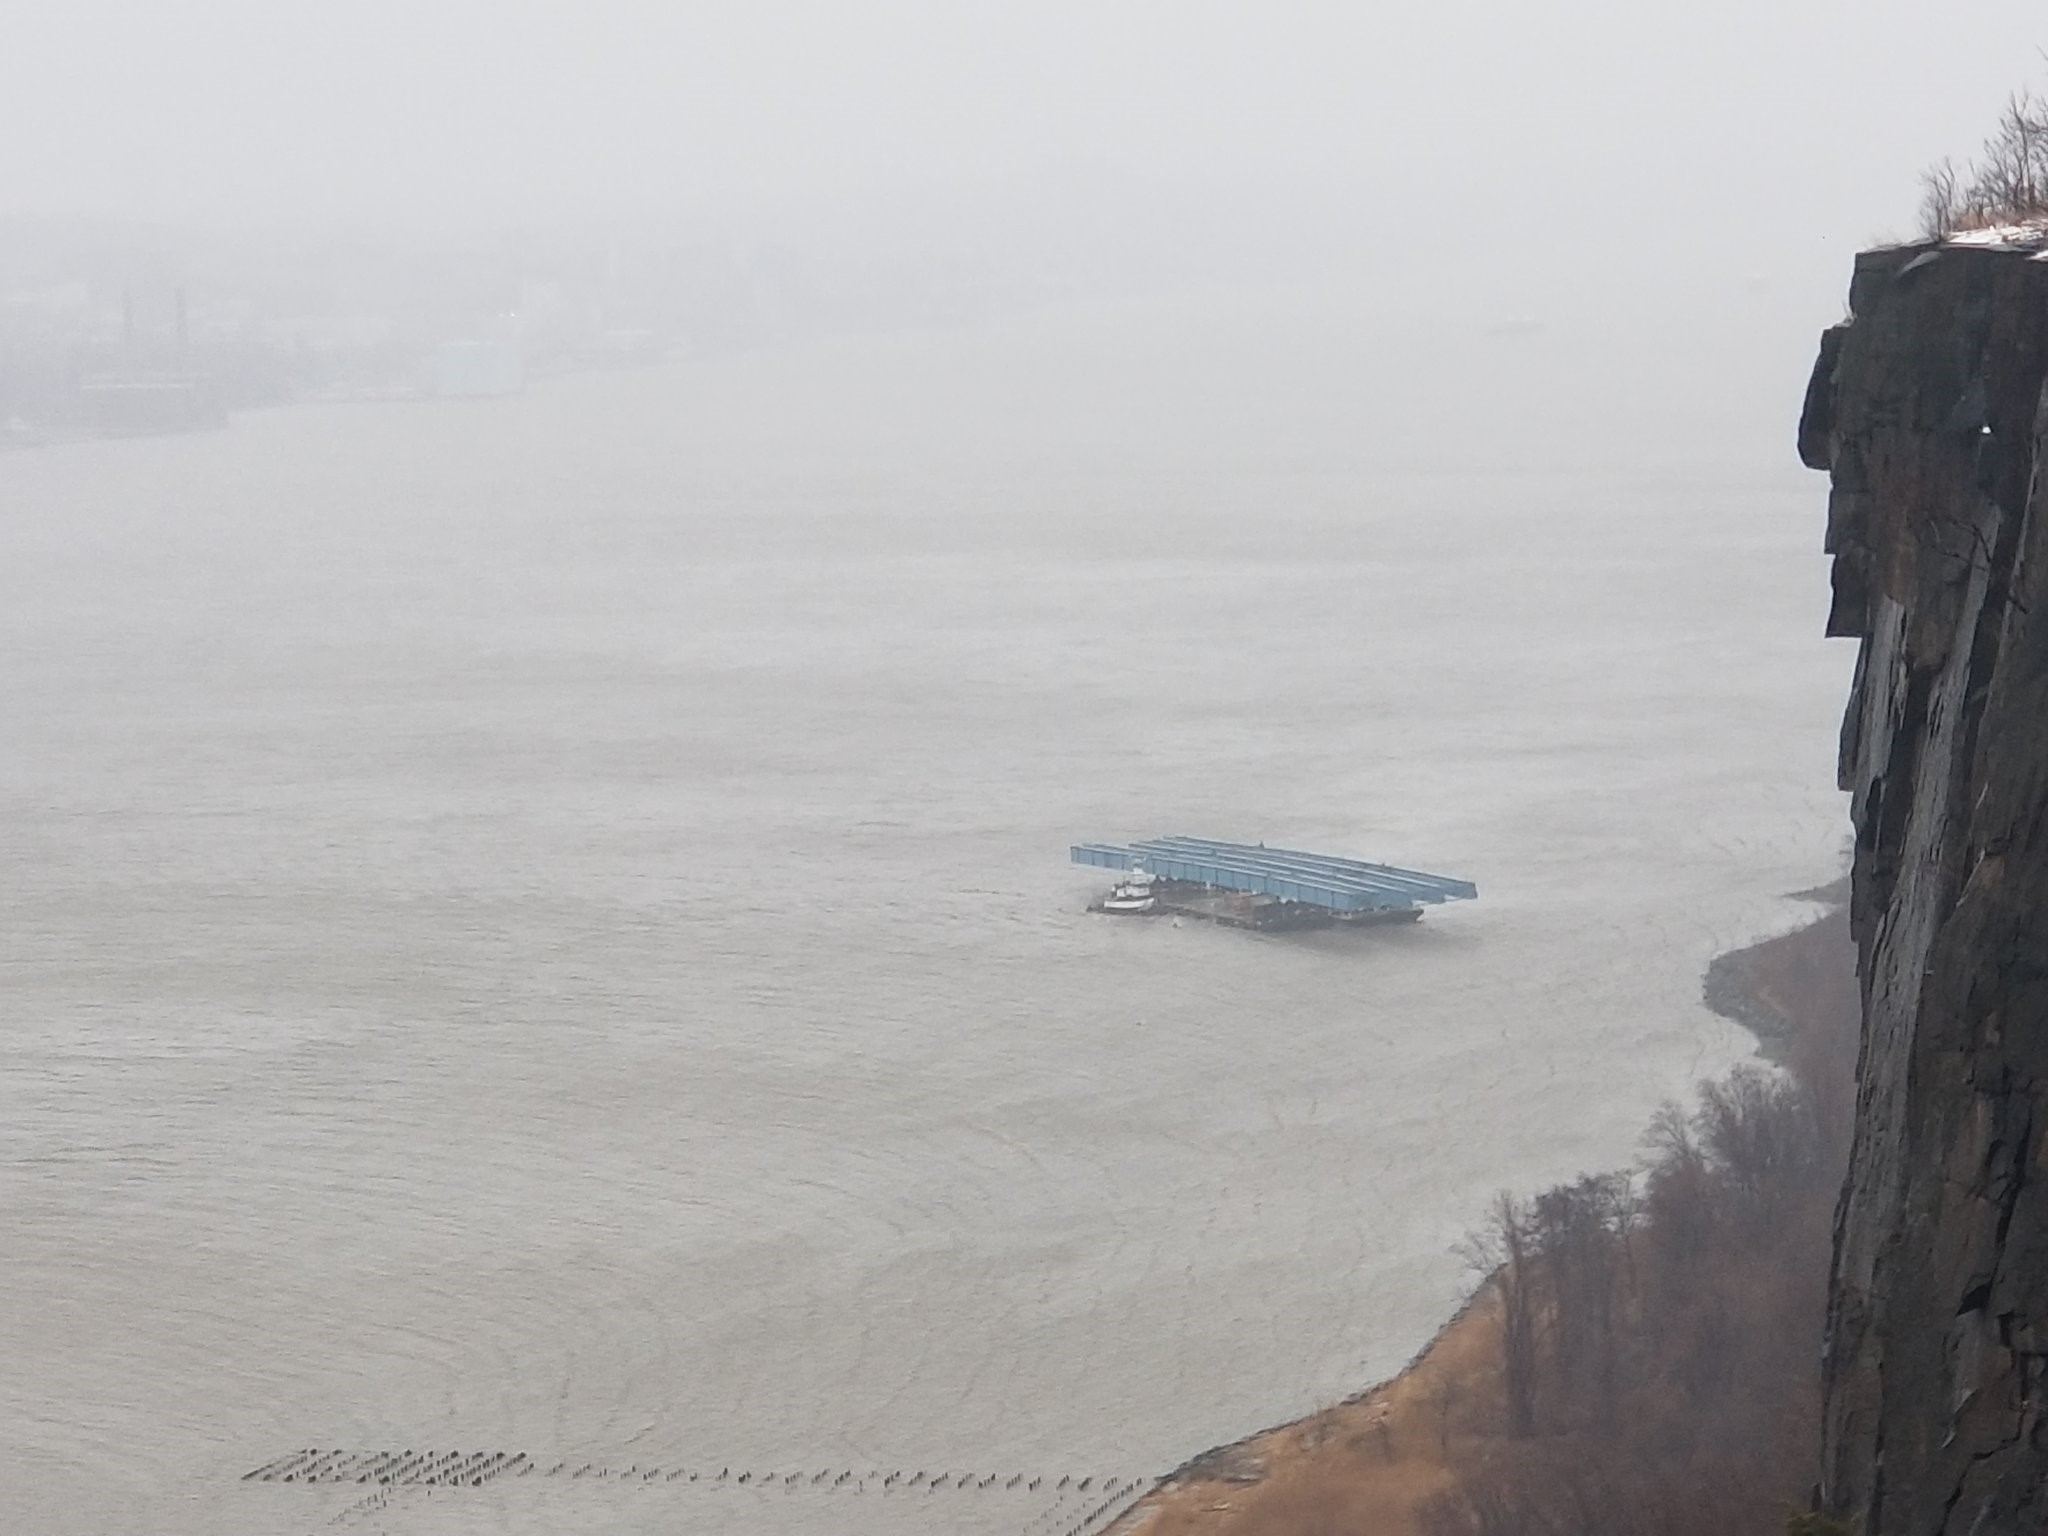 <div class='meta'><div class='origin-logo' data-origin='none'></div><span class='caption-text' data-credit='@ParkwayPolice'>Several barges broke off of the Mario Cuomo/ Tappan Zee Bridge</span></div>